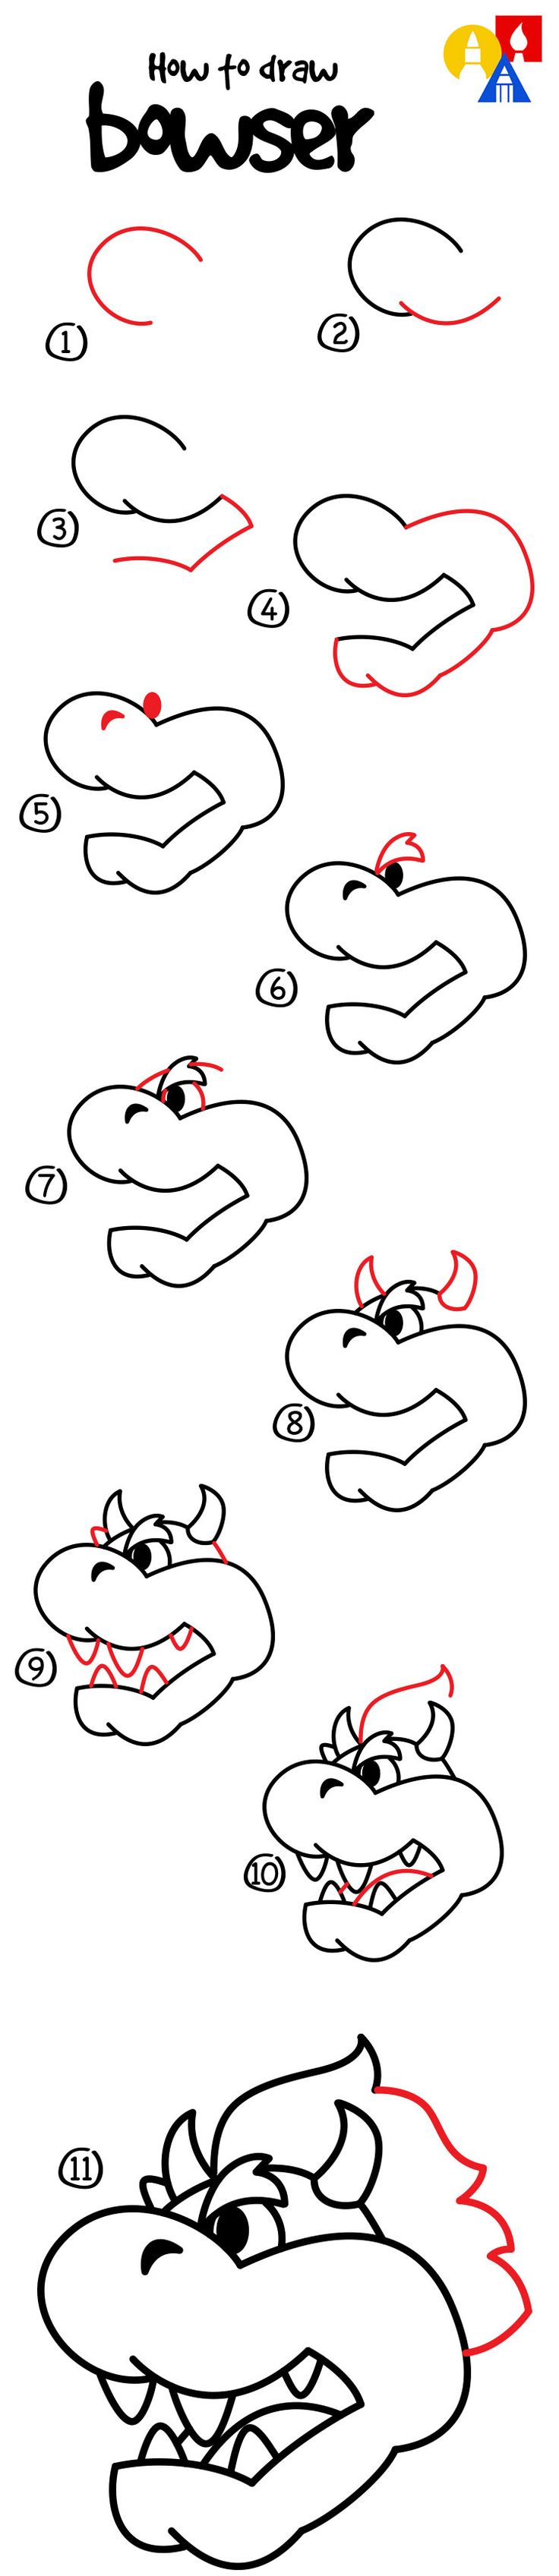 How to draw Bowser!